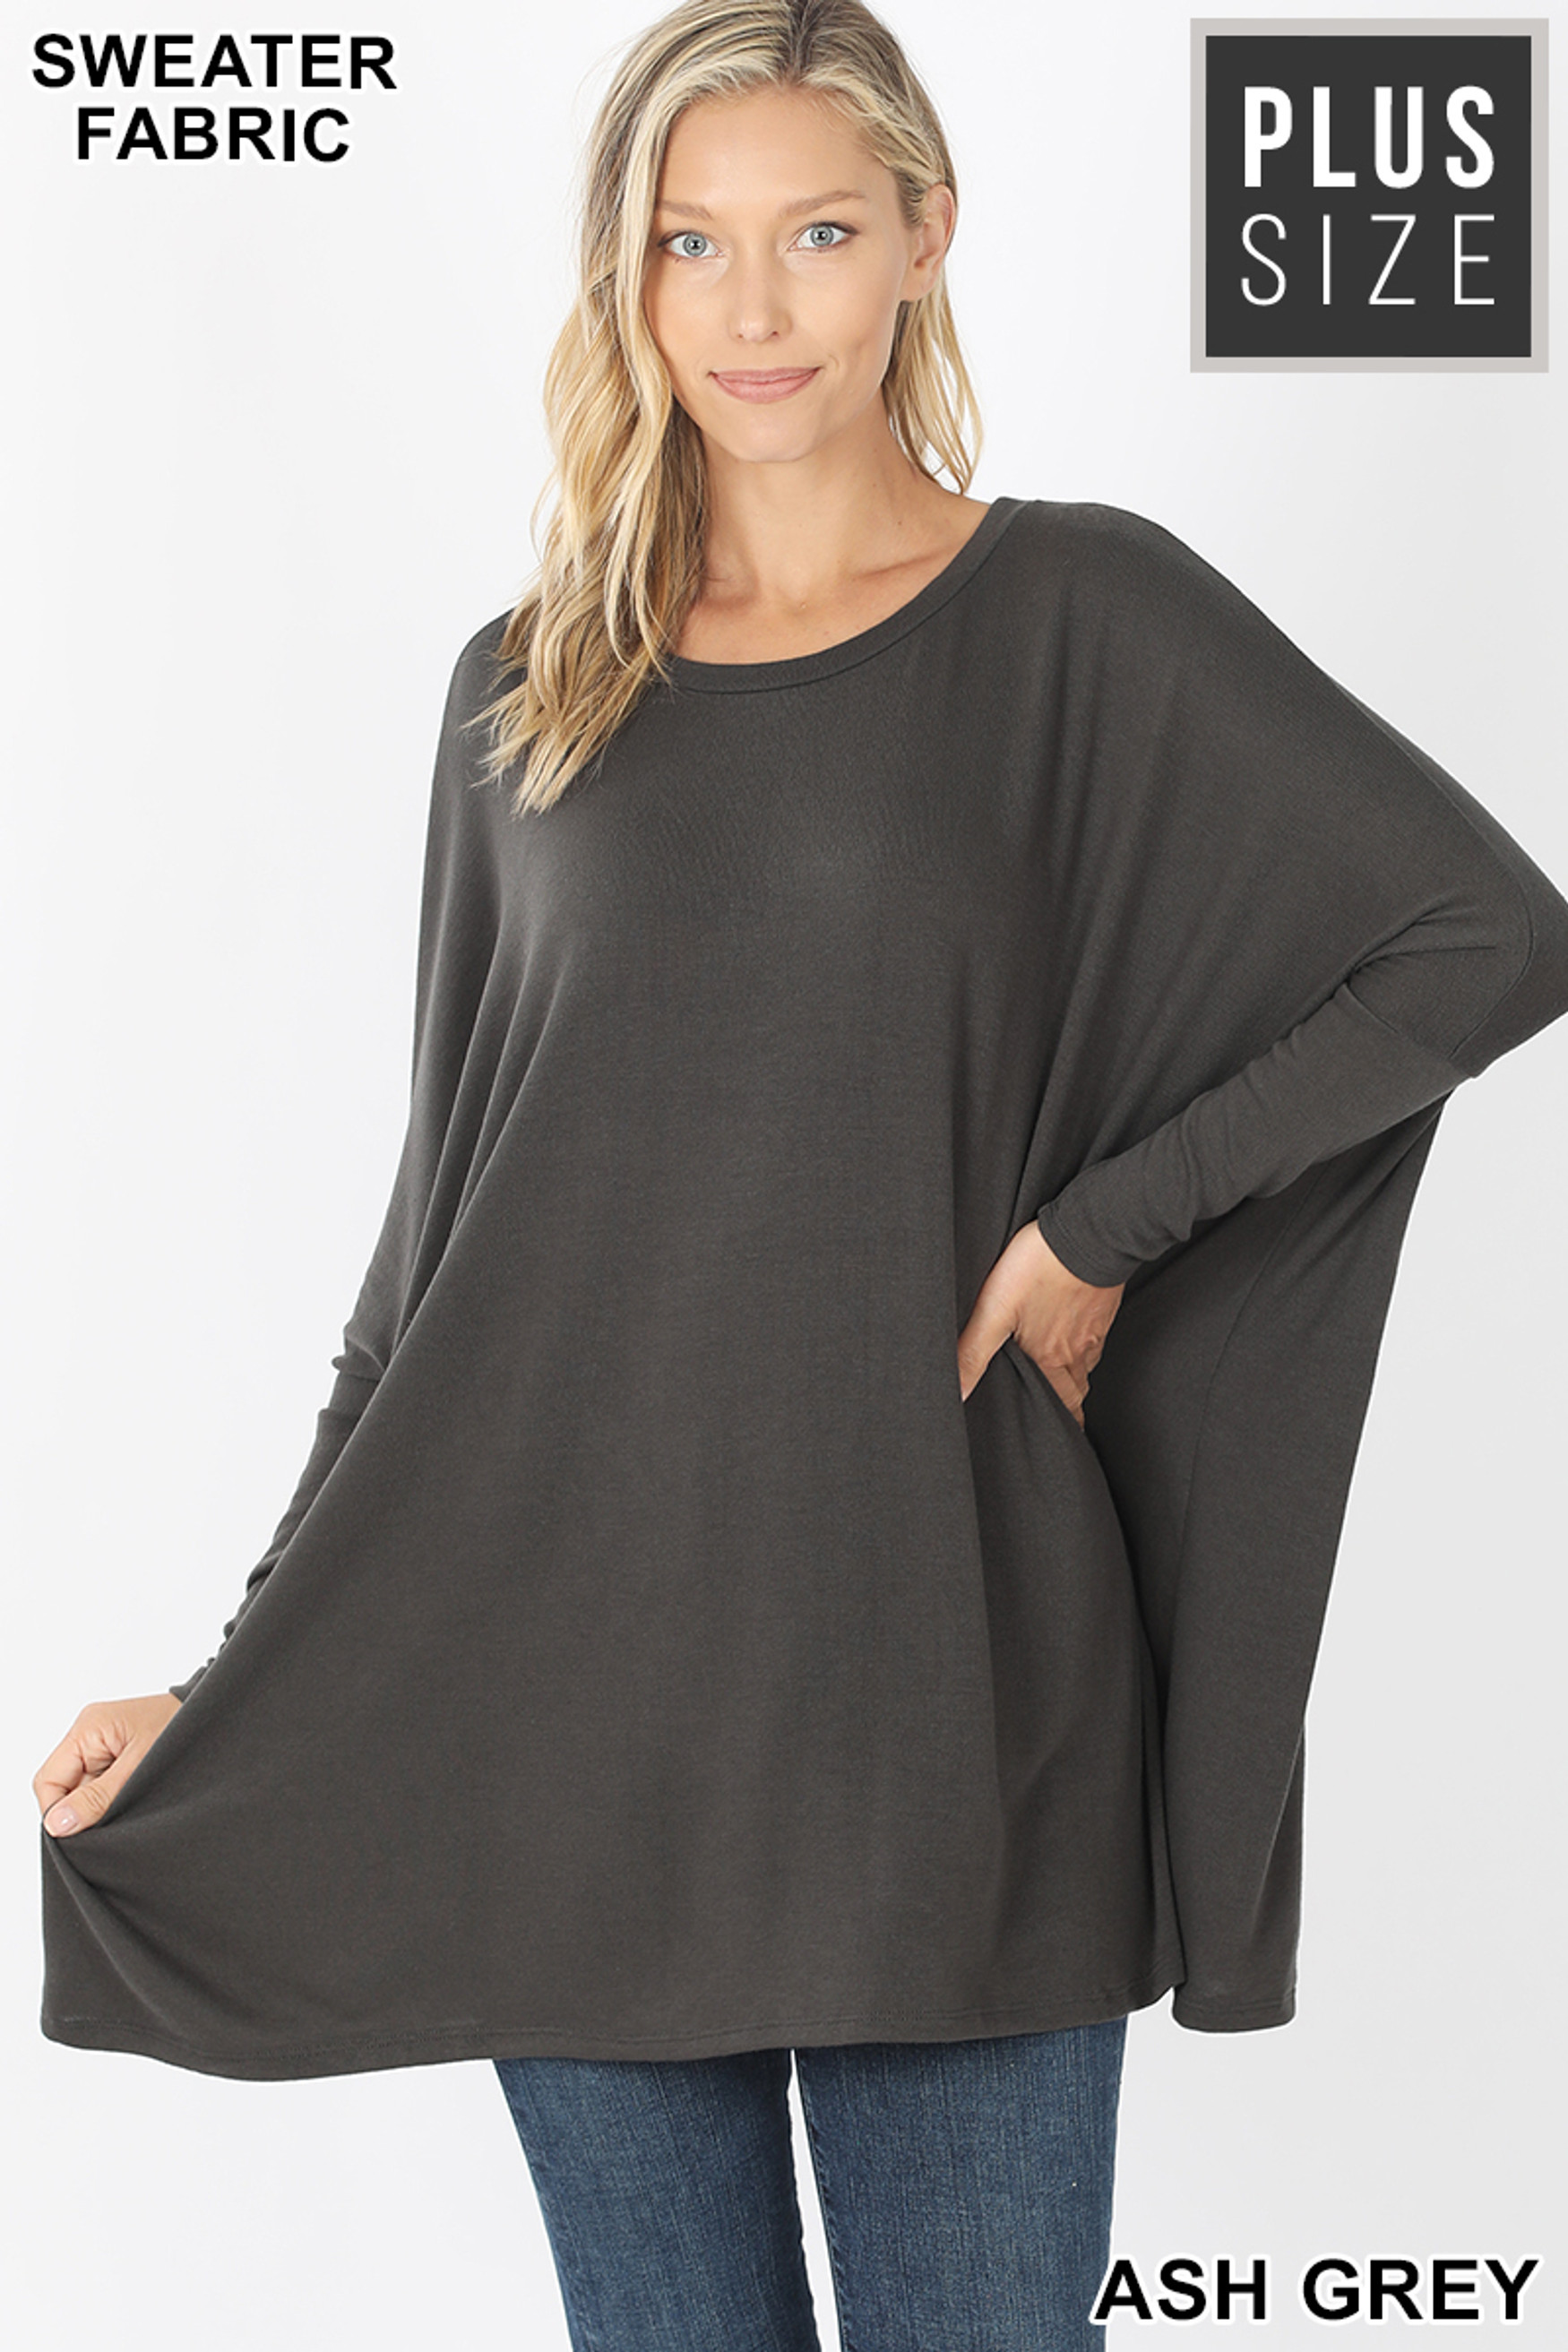 Front view of Ash Grey Oversized Round Neck Poncho Plus Size Sweater